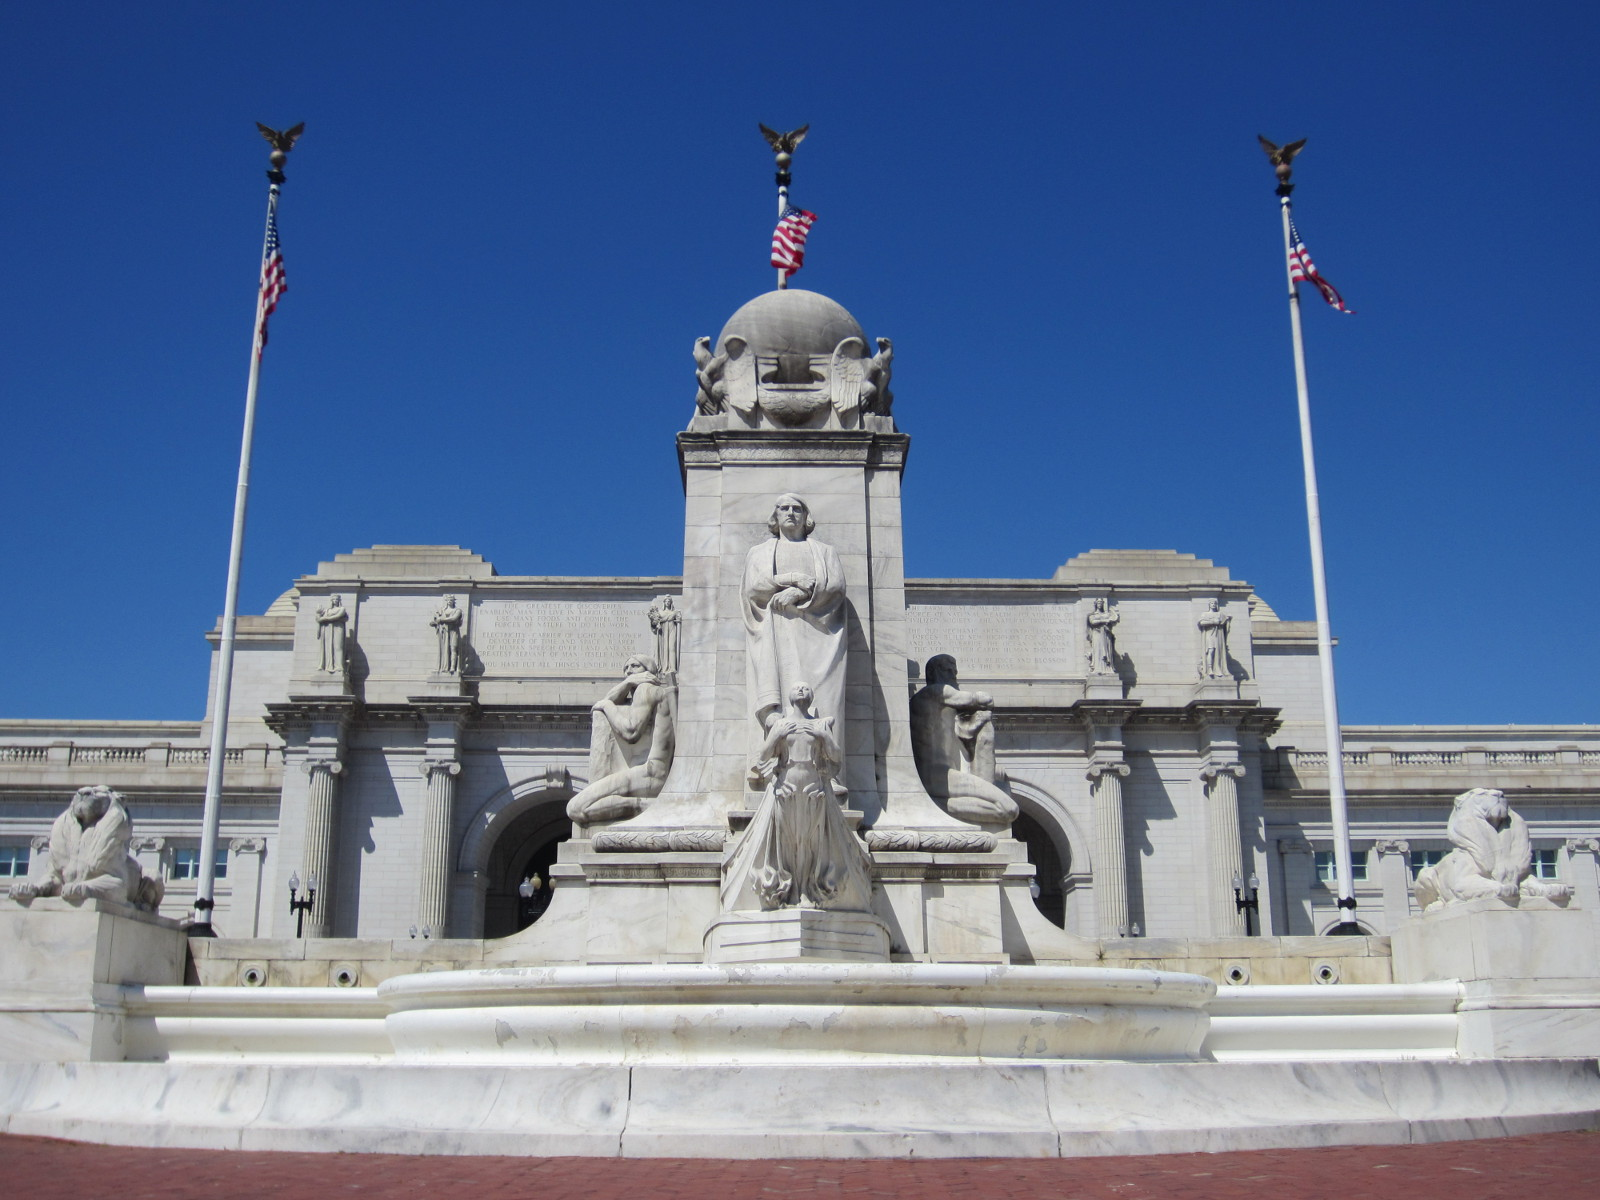 1912, Entwurf und Ausführung: Lorado Taft und Daniel Burnham. Marmor, 14 m × 20 m × 13 m, Washington, D. C., Union Station.